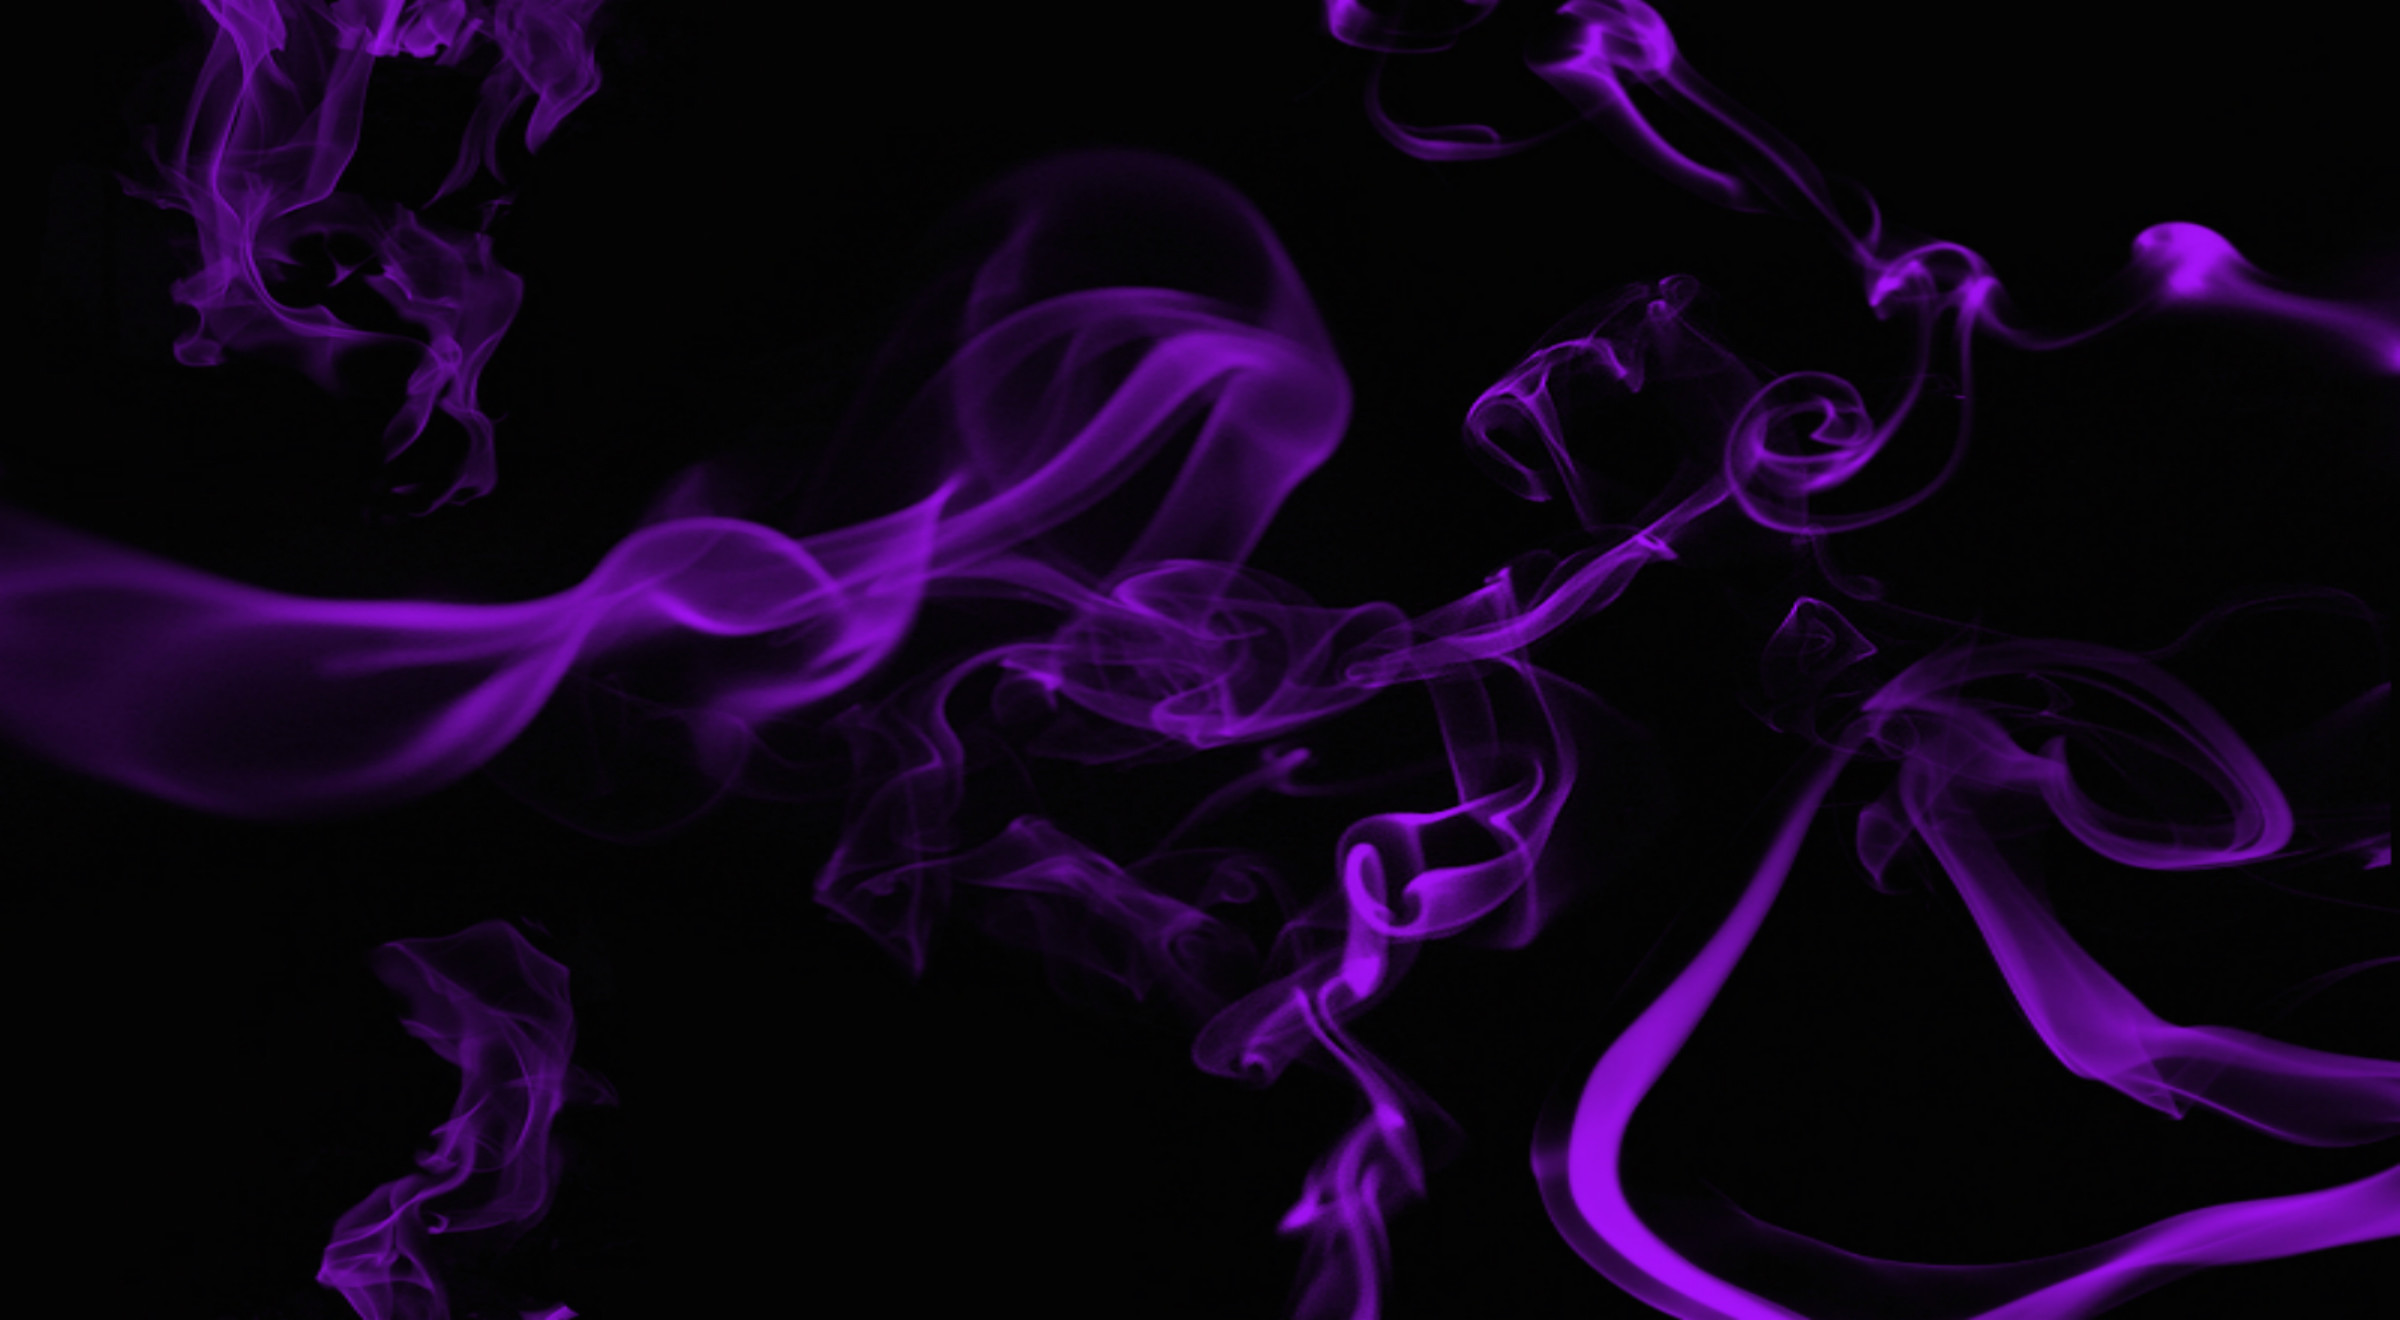 2400x1320 Abstract - Smoke Purple Somke Wallpaper